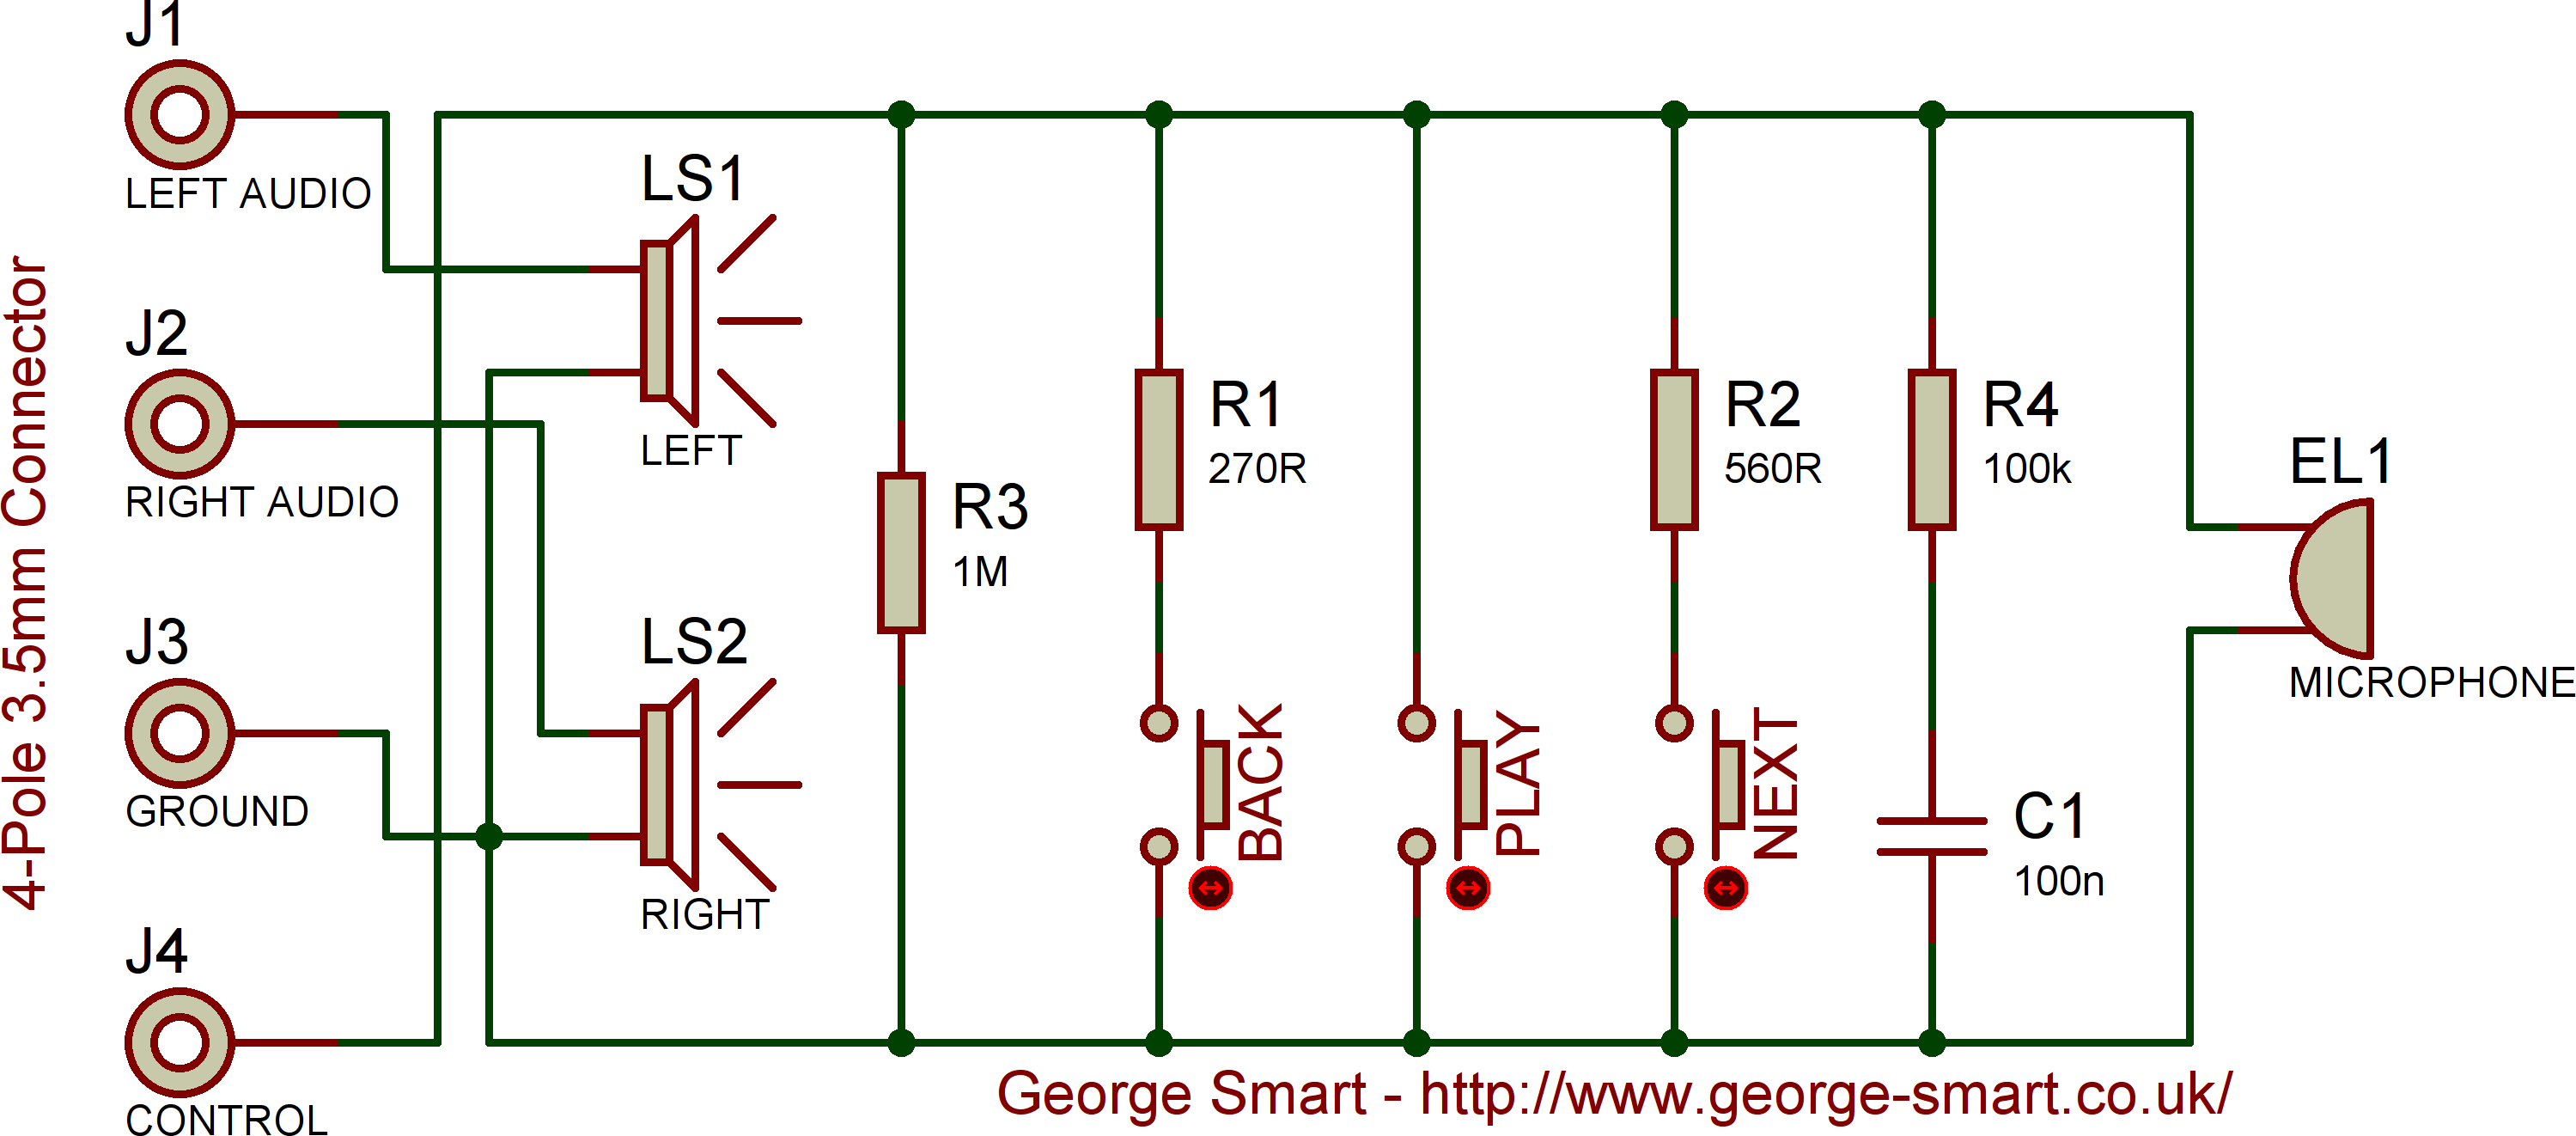 HTCHeadsetSchematic?resize=665%2C293&ssl=1 iphone headphone remote wiring diagram wiring diagram iphone remote wiring diagram at alyssarenee.co